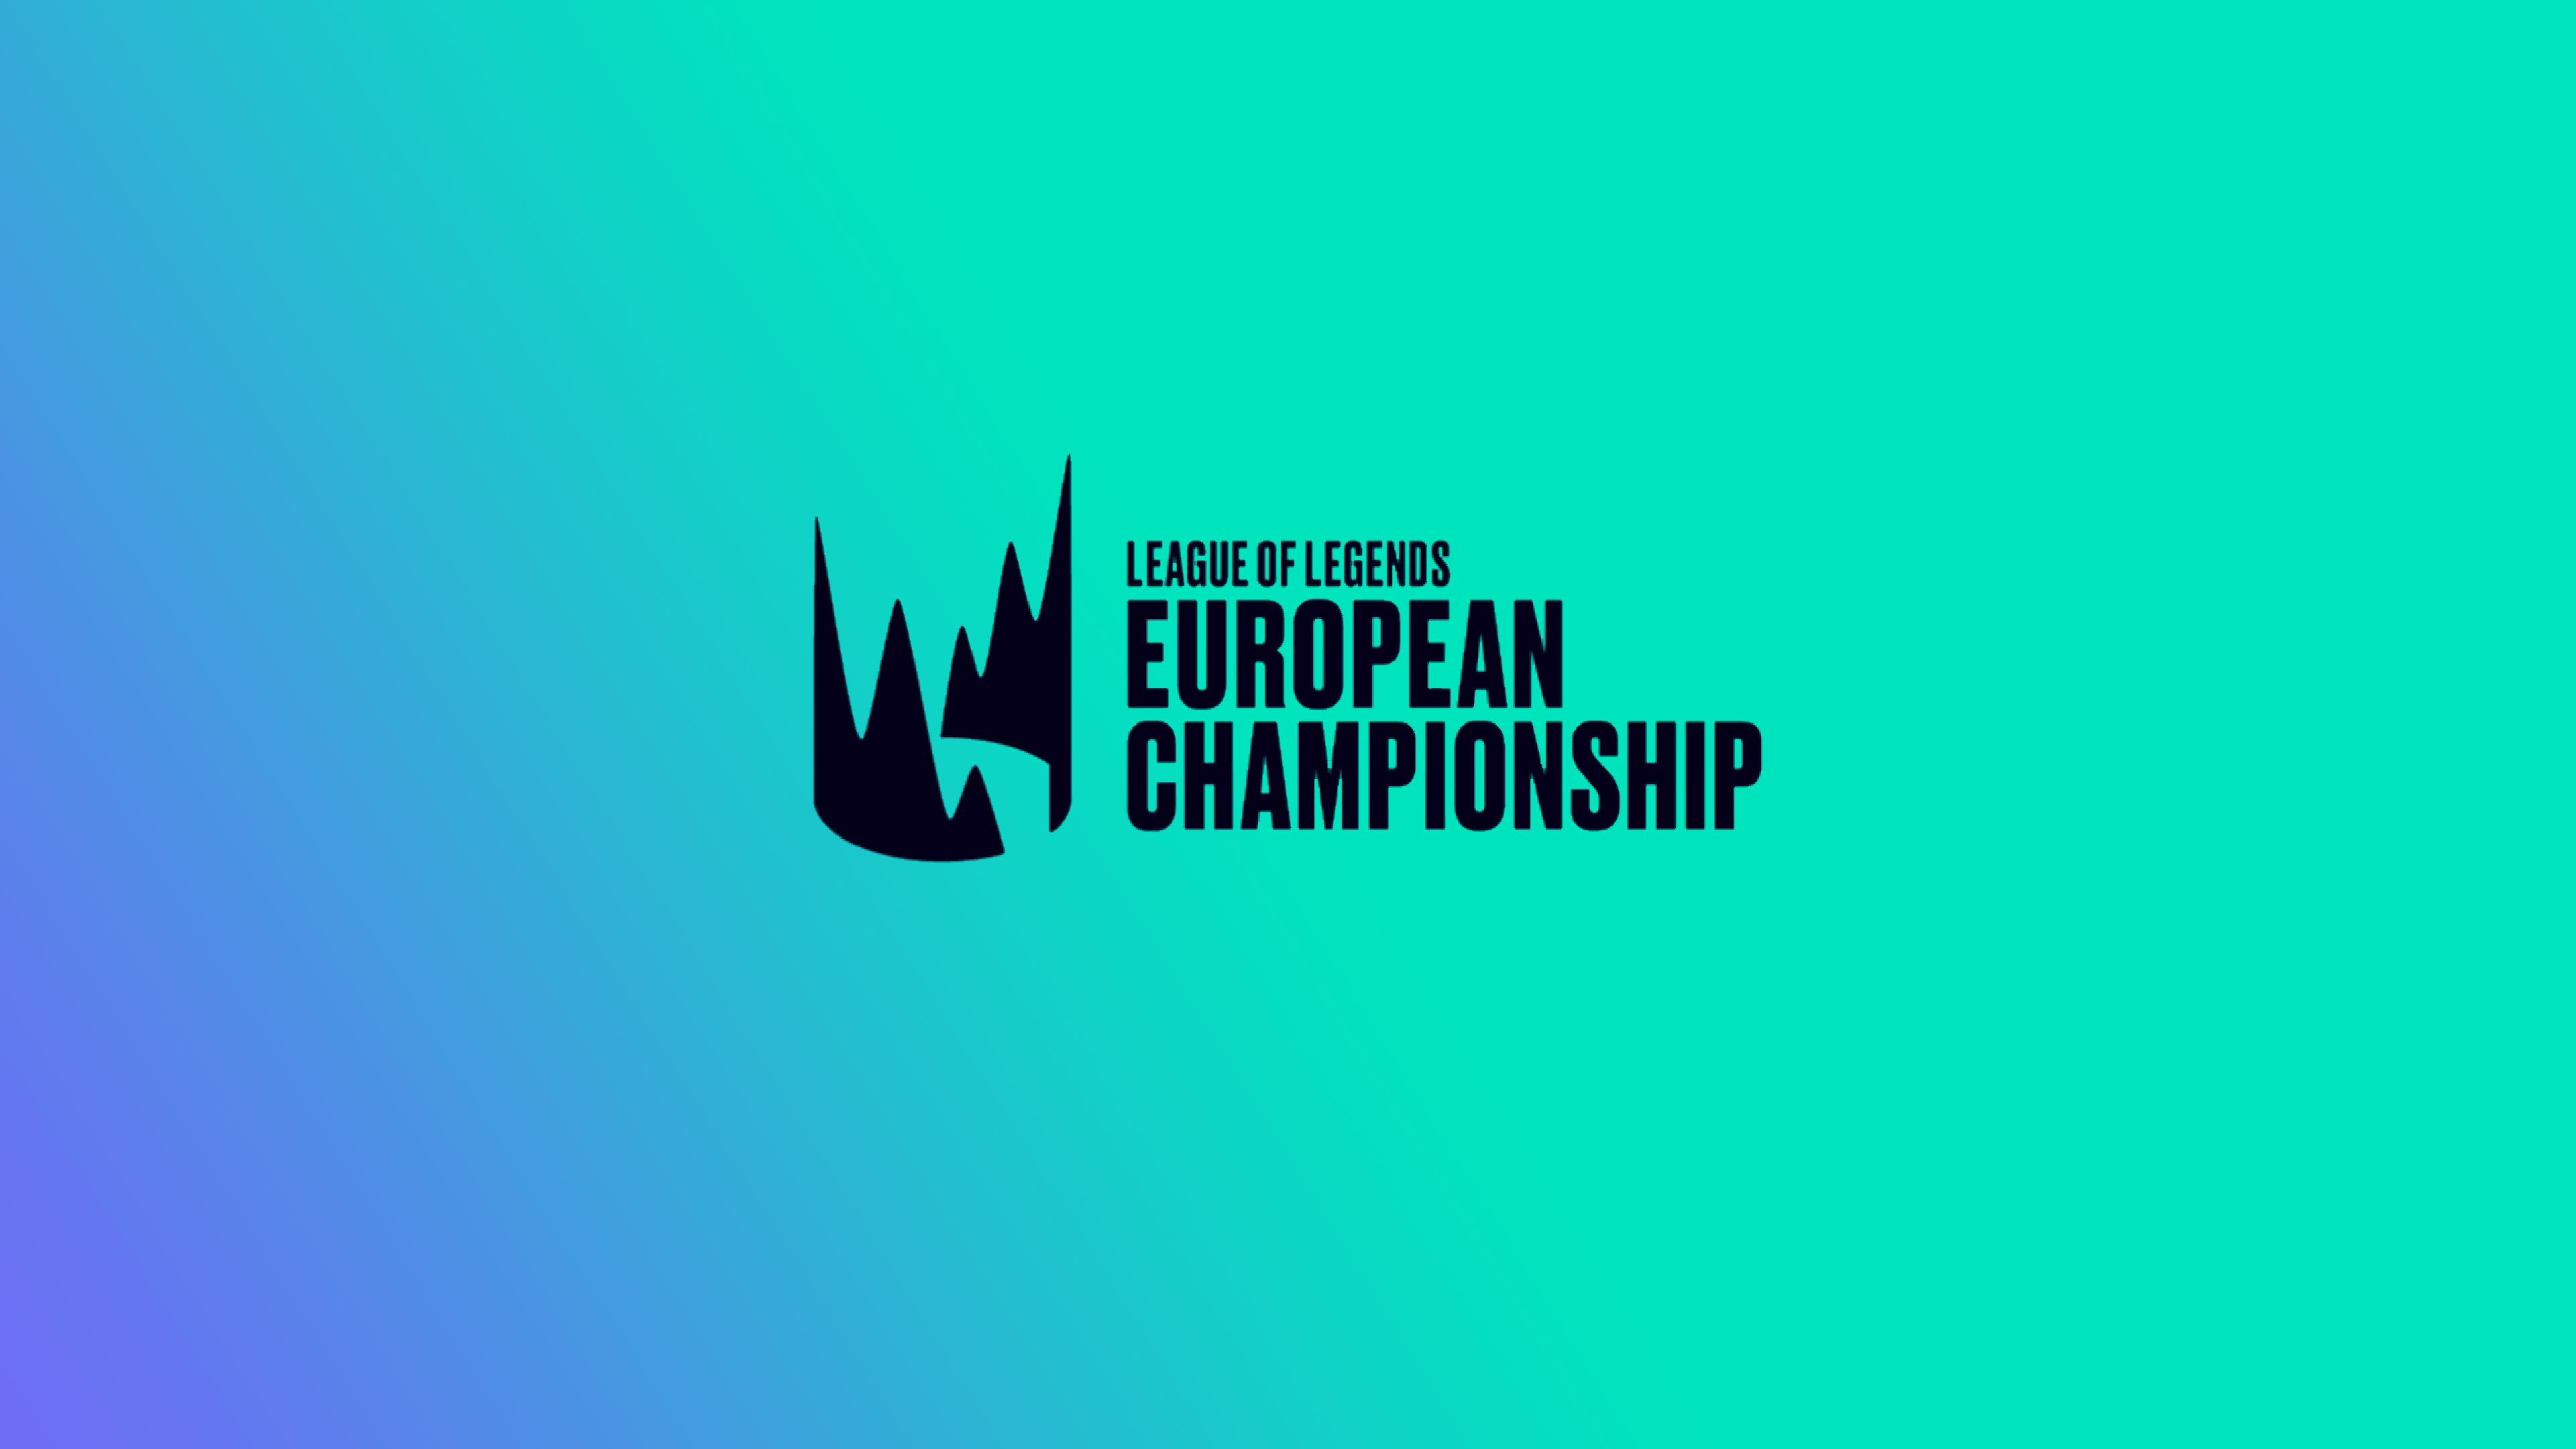 LEC – European League Of Legends Caster Froskurinn Is No Longer Contracted To Riot Games